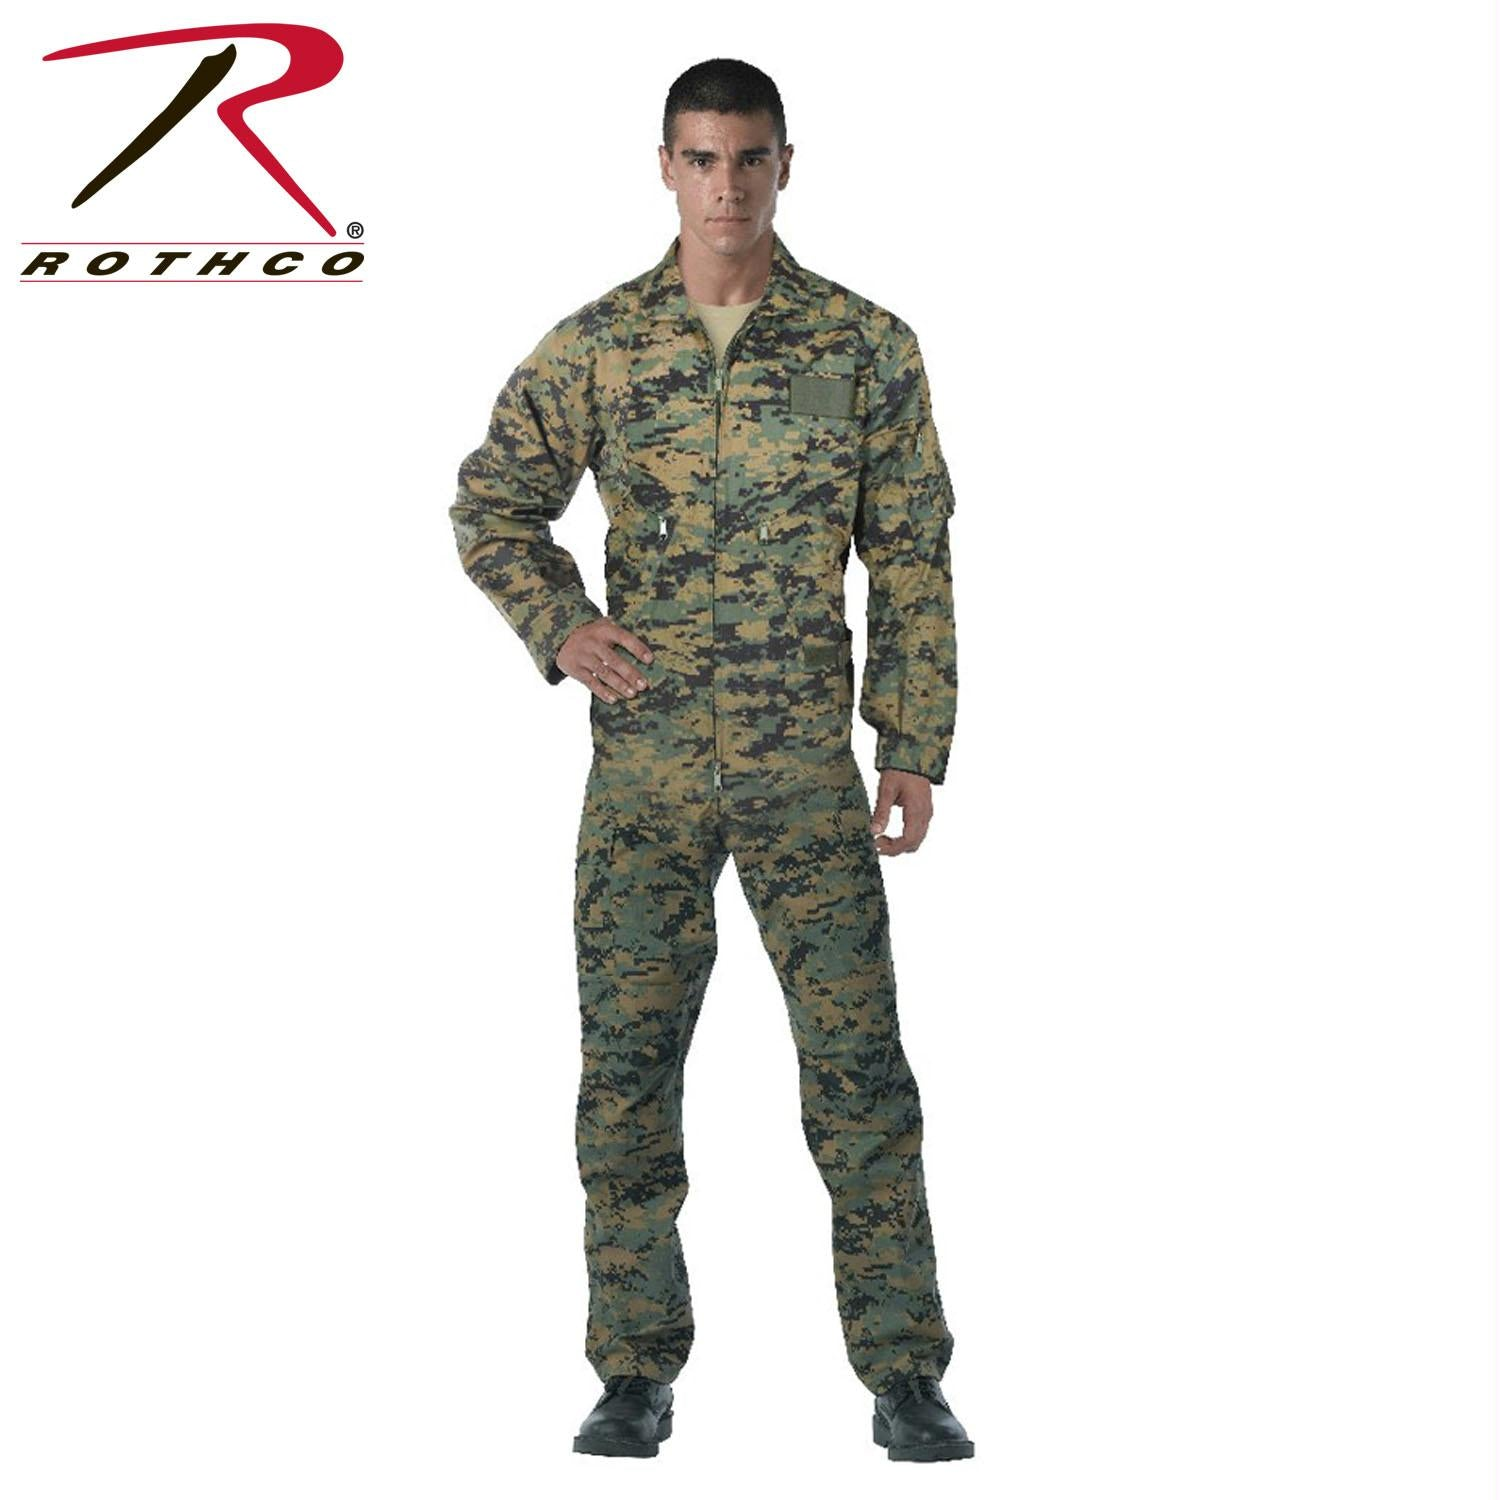 Rothco Flightsuits - Woodland Digital Camo / 2XL